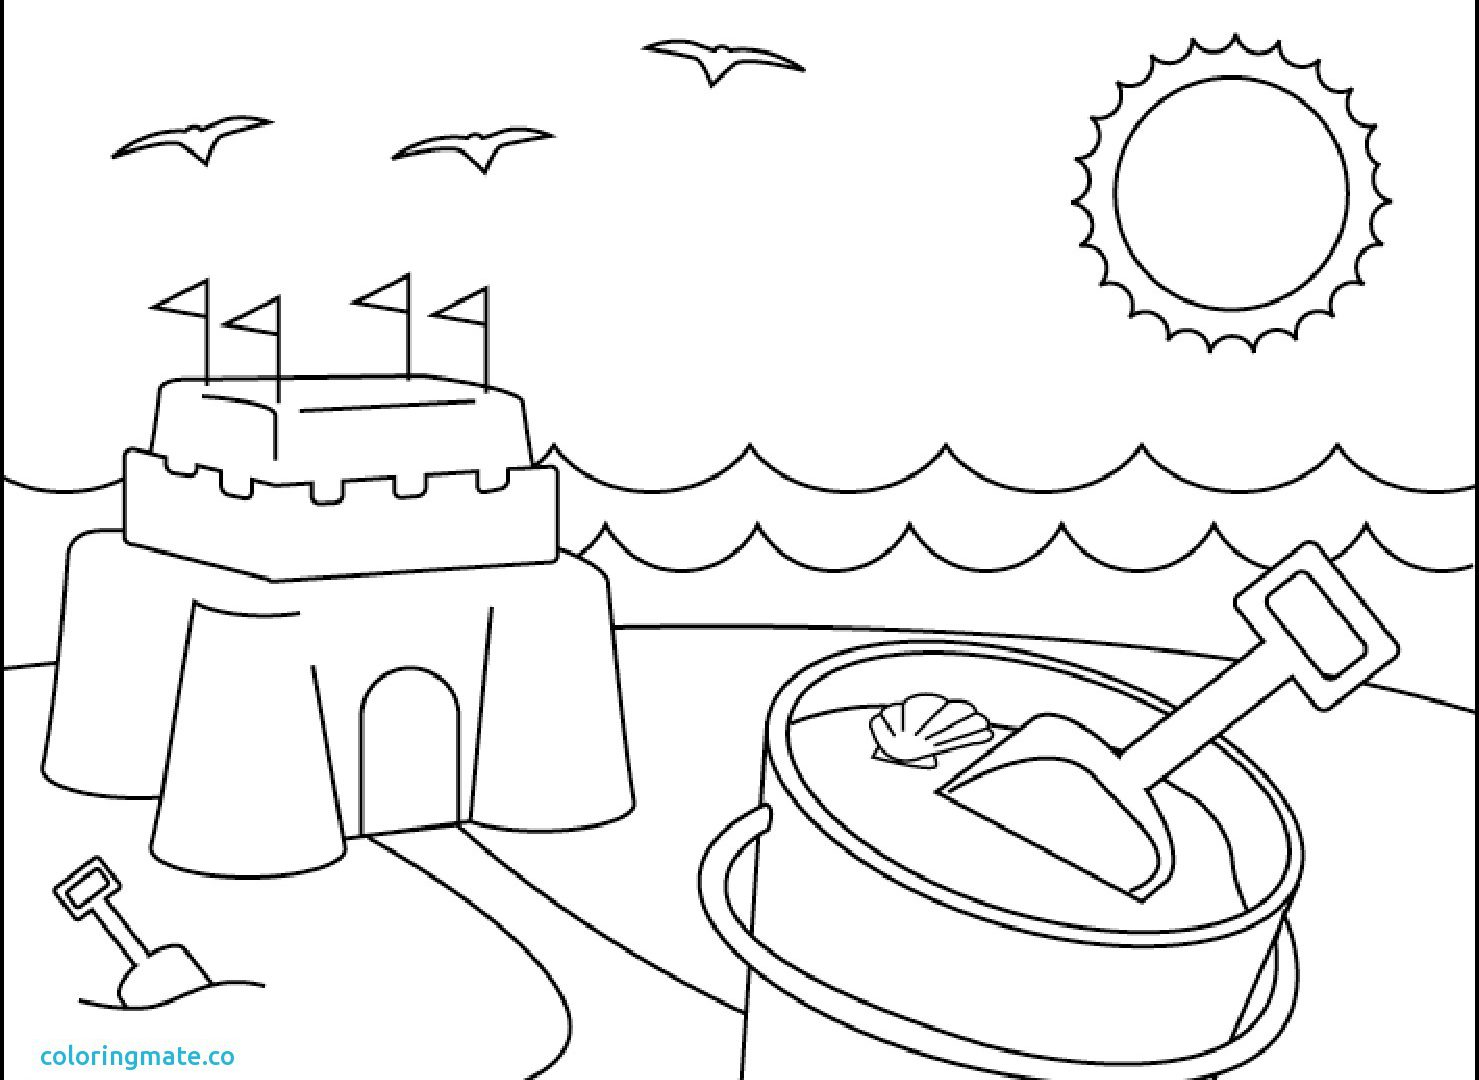 1479x1080 Childrens Coloring Pages Beach Ball Free Umbrella Preschool Themed